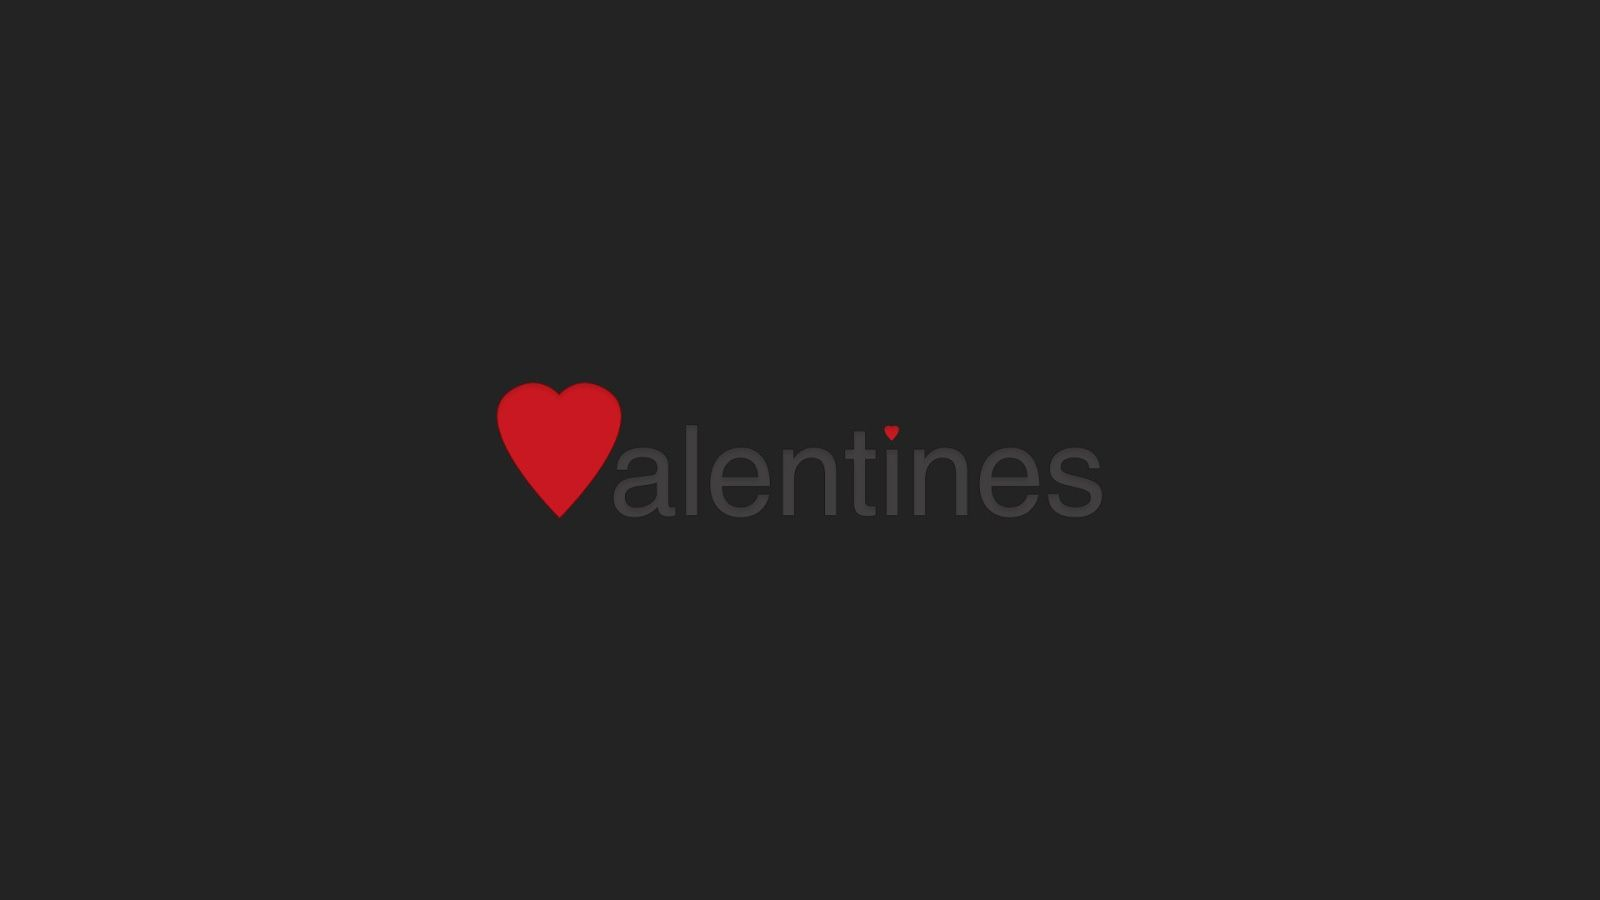 Valentines Day Wallpapers Ascii Art Graphics Software